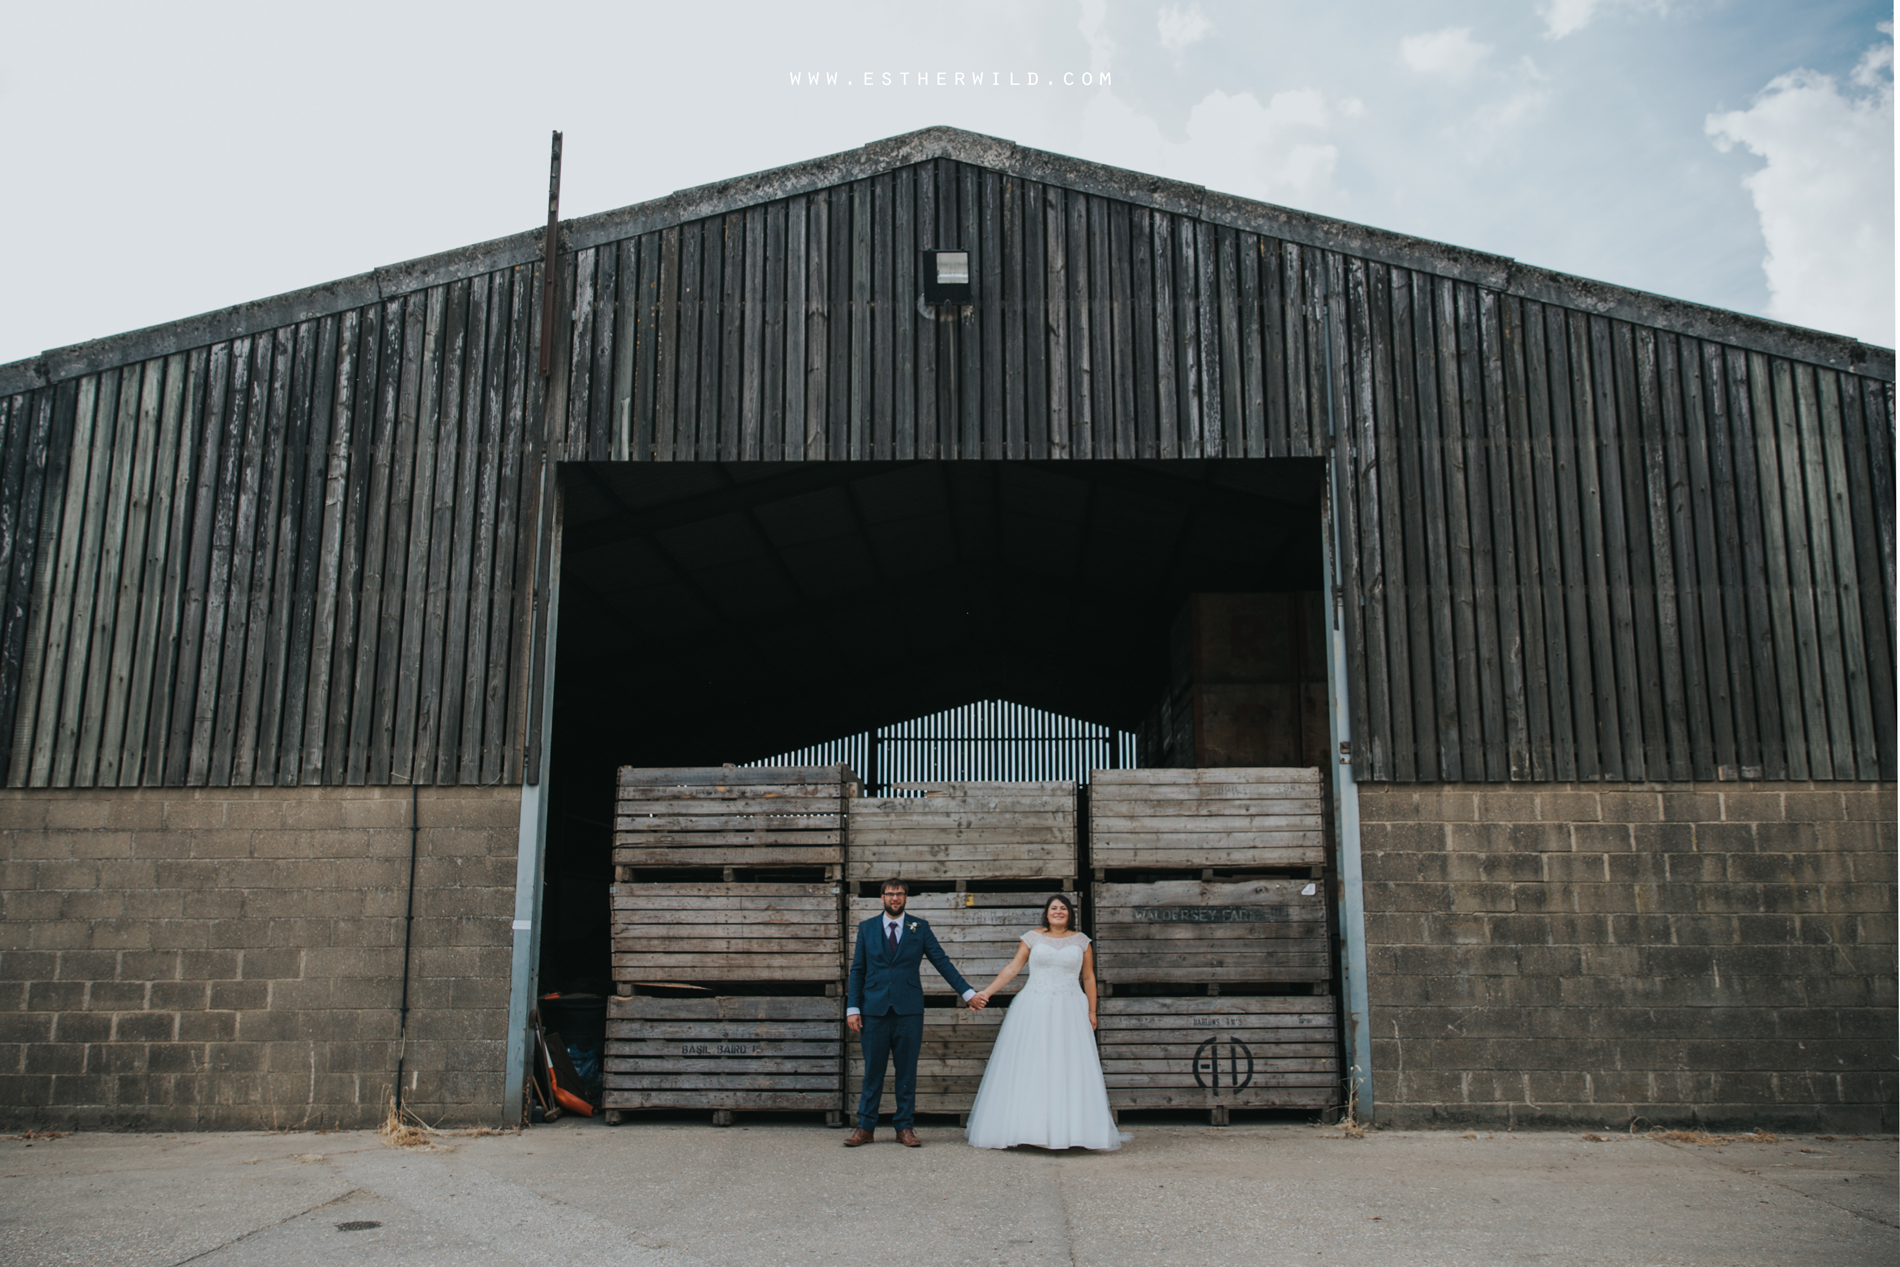 The_Red_Barn_Wedding_Kings_Lynn_Norfolk_IMG_1555.jpg